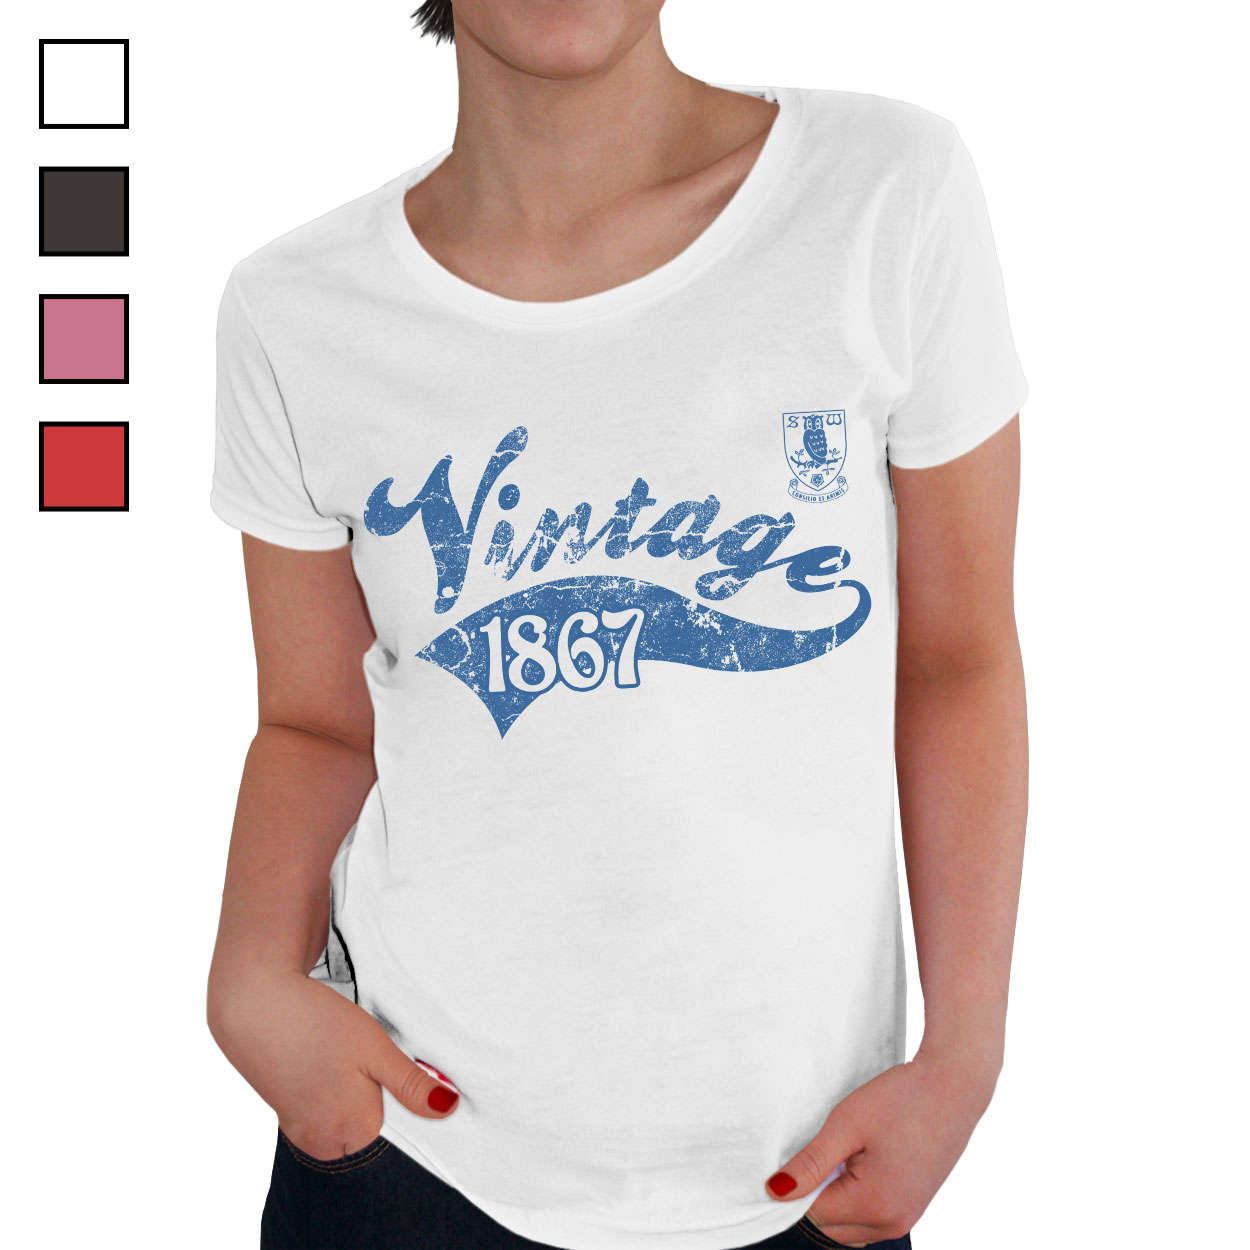 Sheffield Wednesday FC Ladies Vintage T-Shirt